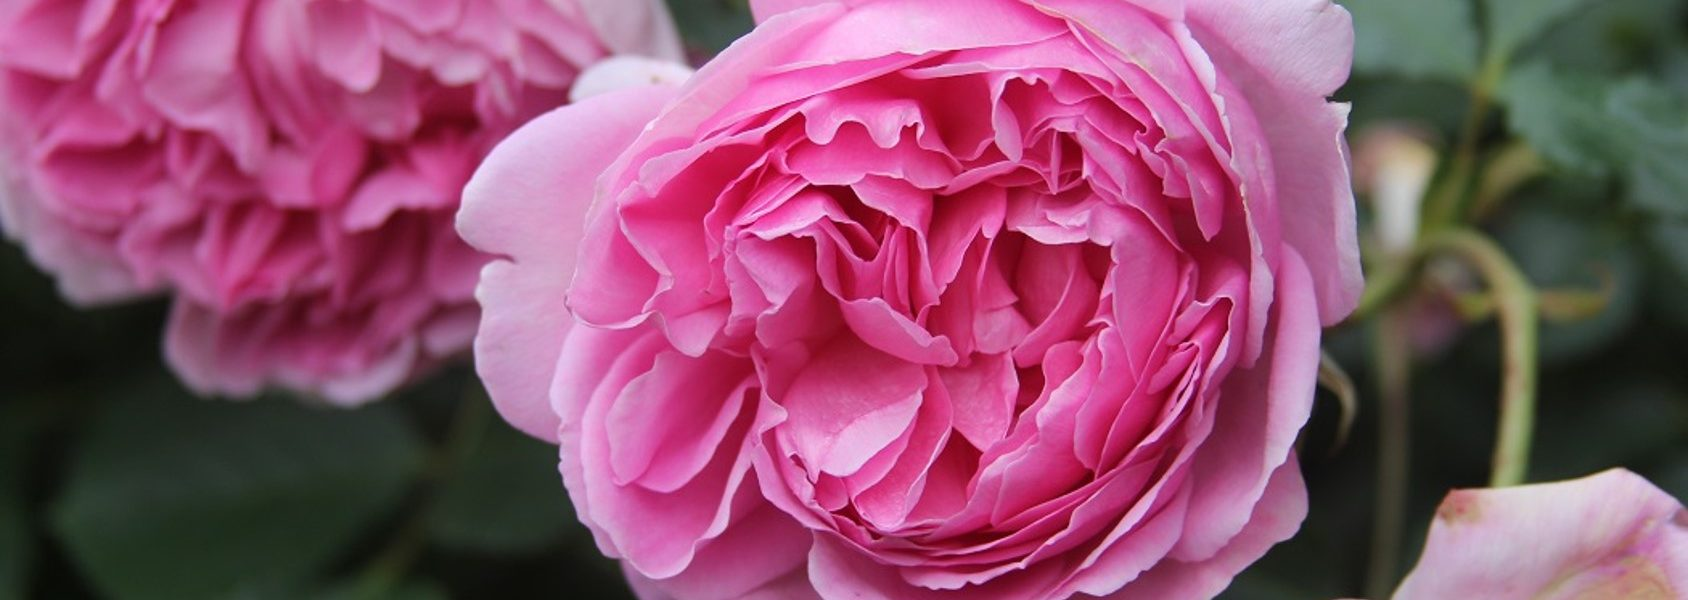 The best rose review of rose 'Maid Marion' by The Right Roses. Our in-depth reviews have been trusted by millions gardeners worldwide. The Right Roses team uses our own The Right Roses Score, which is the most comprehensive rose rating system, to assess the overall quality of a rose. All information and rose products: best top garden store, david austin, english roses, rose products, rose rating, the right leap, rose food, fertilizer